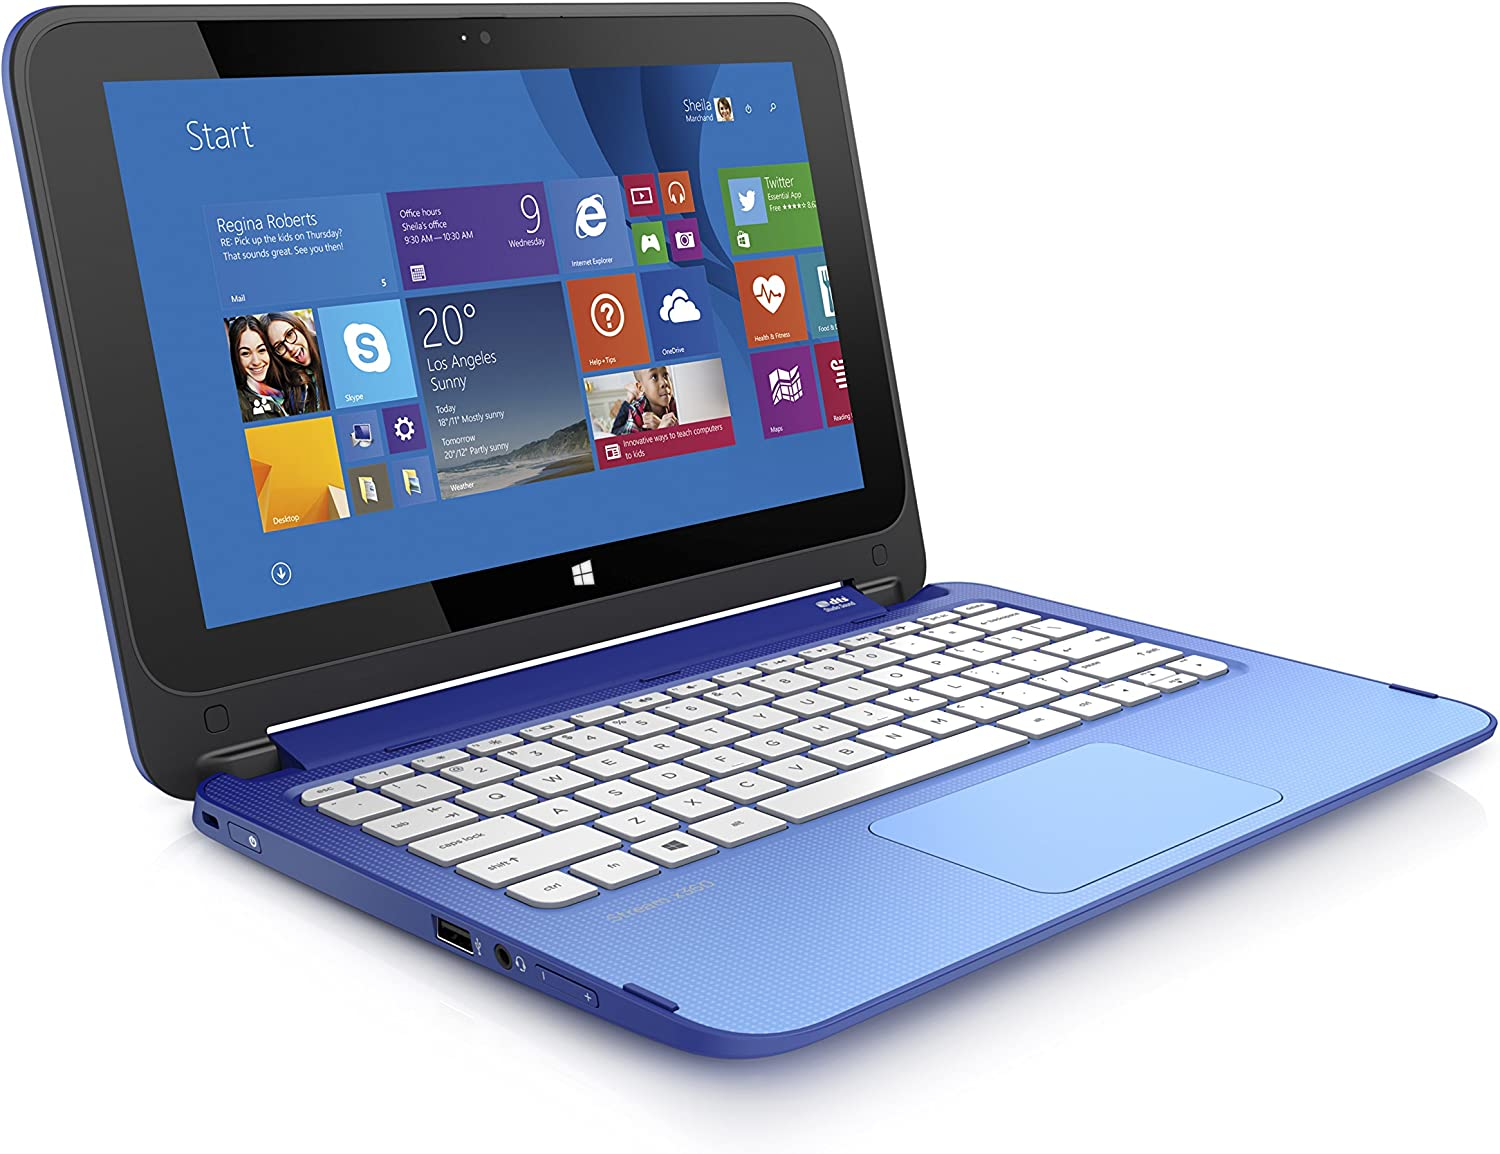 (Discontinued) HP Stream 11.6-Inch Convertible Touchscreen Laptop (Intel Celeron, 2 GB, 32 GB SSD, Blue) Includes Office 365 Personal for One Year